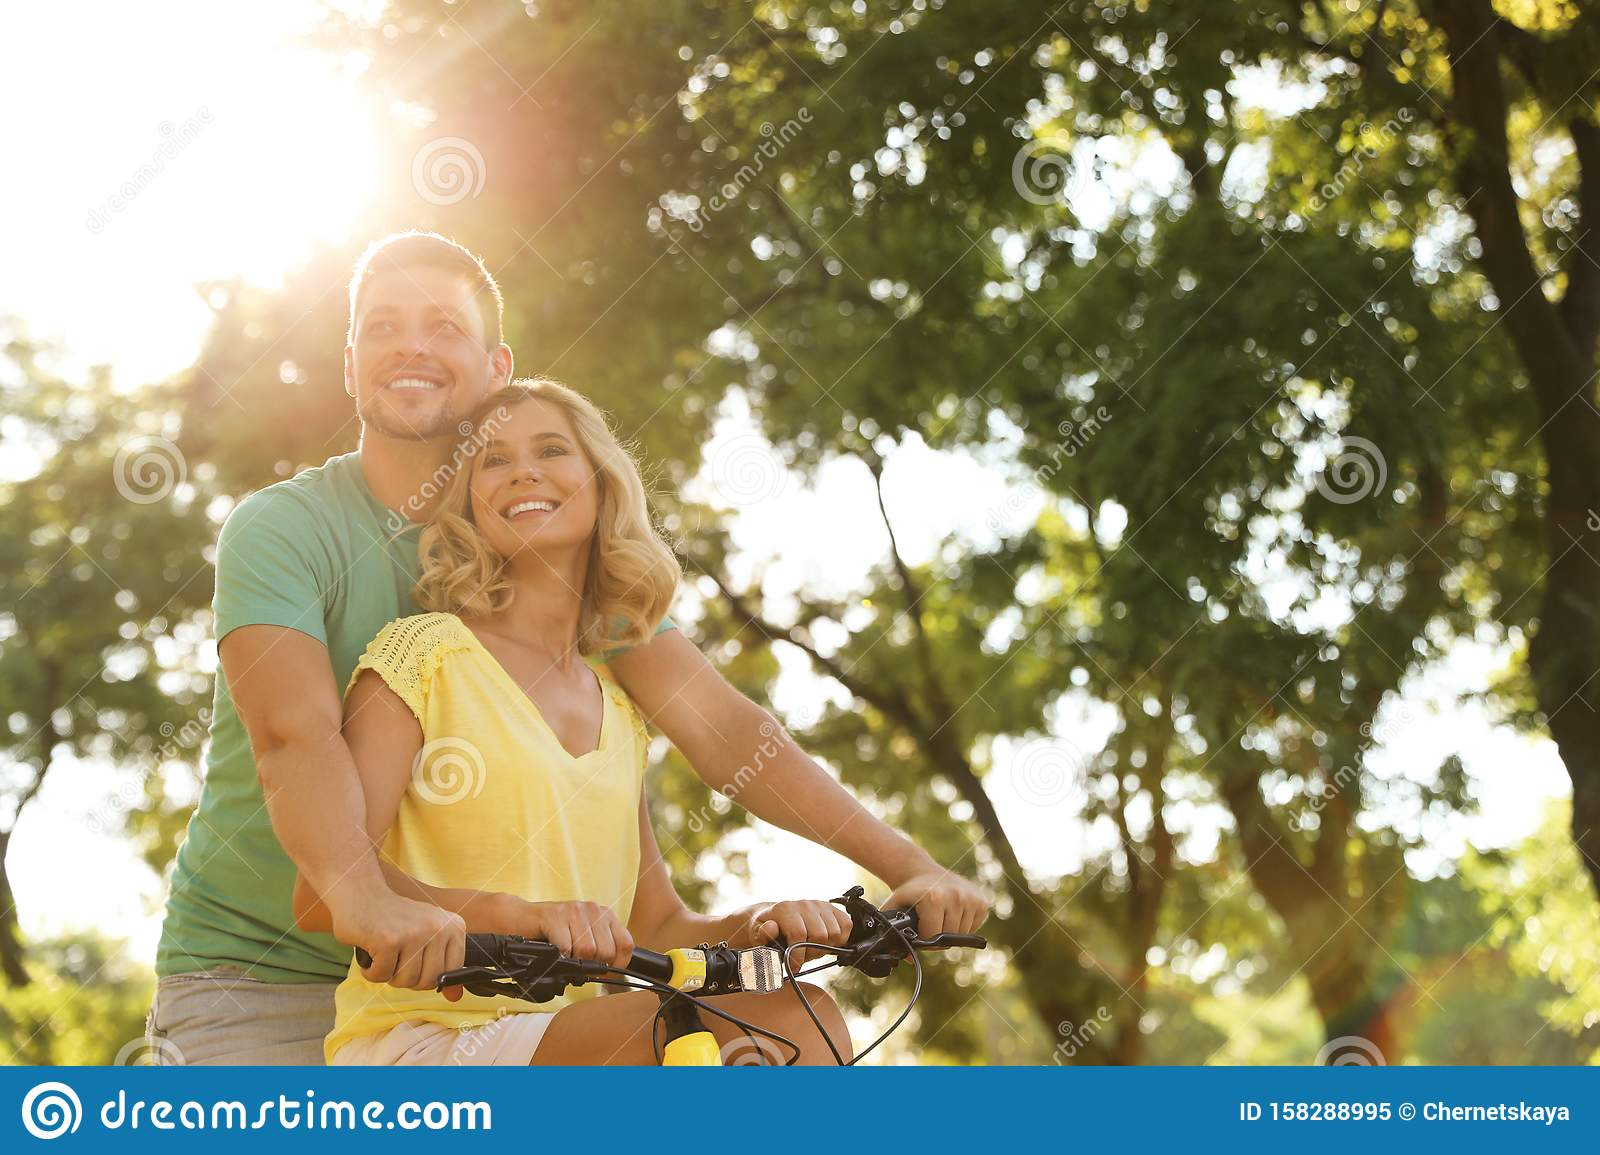 Lovely couple with bicycle in park